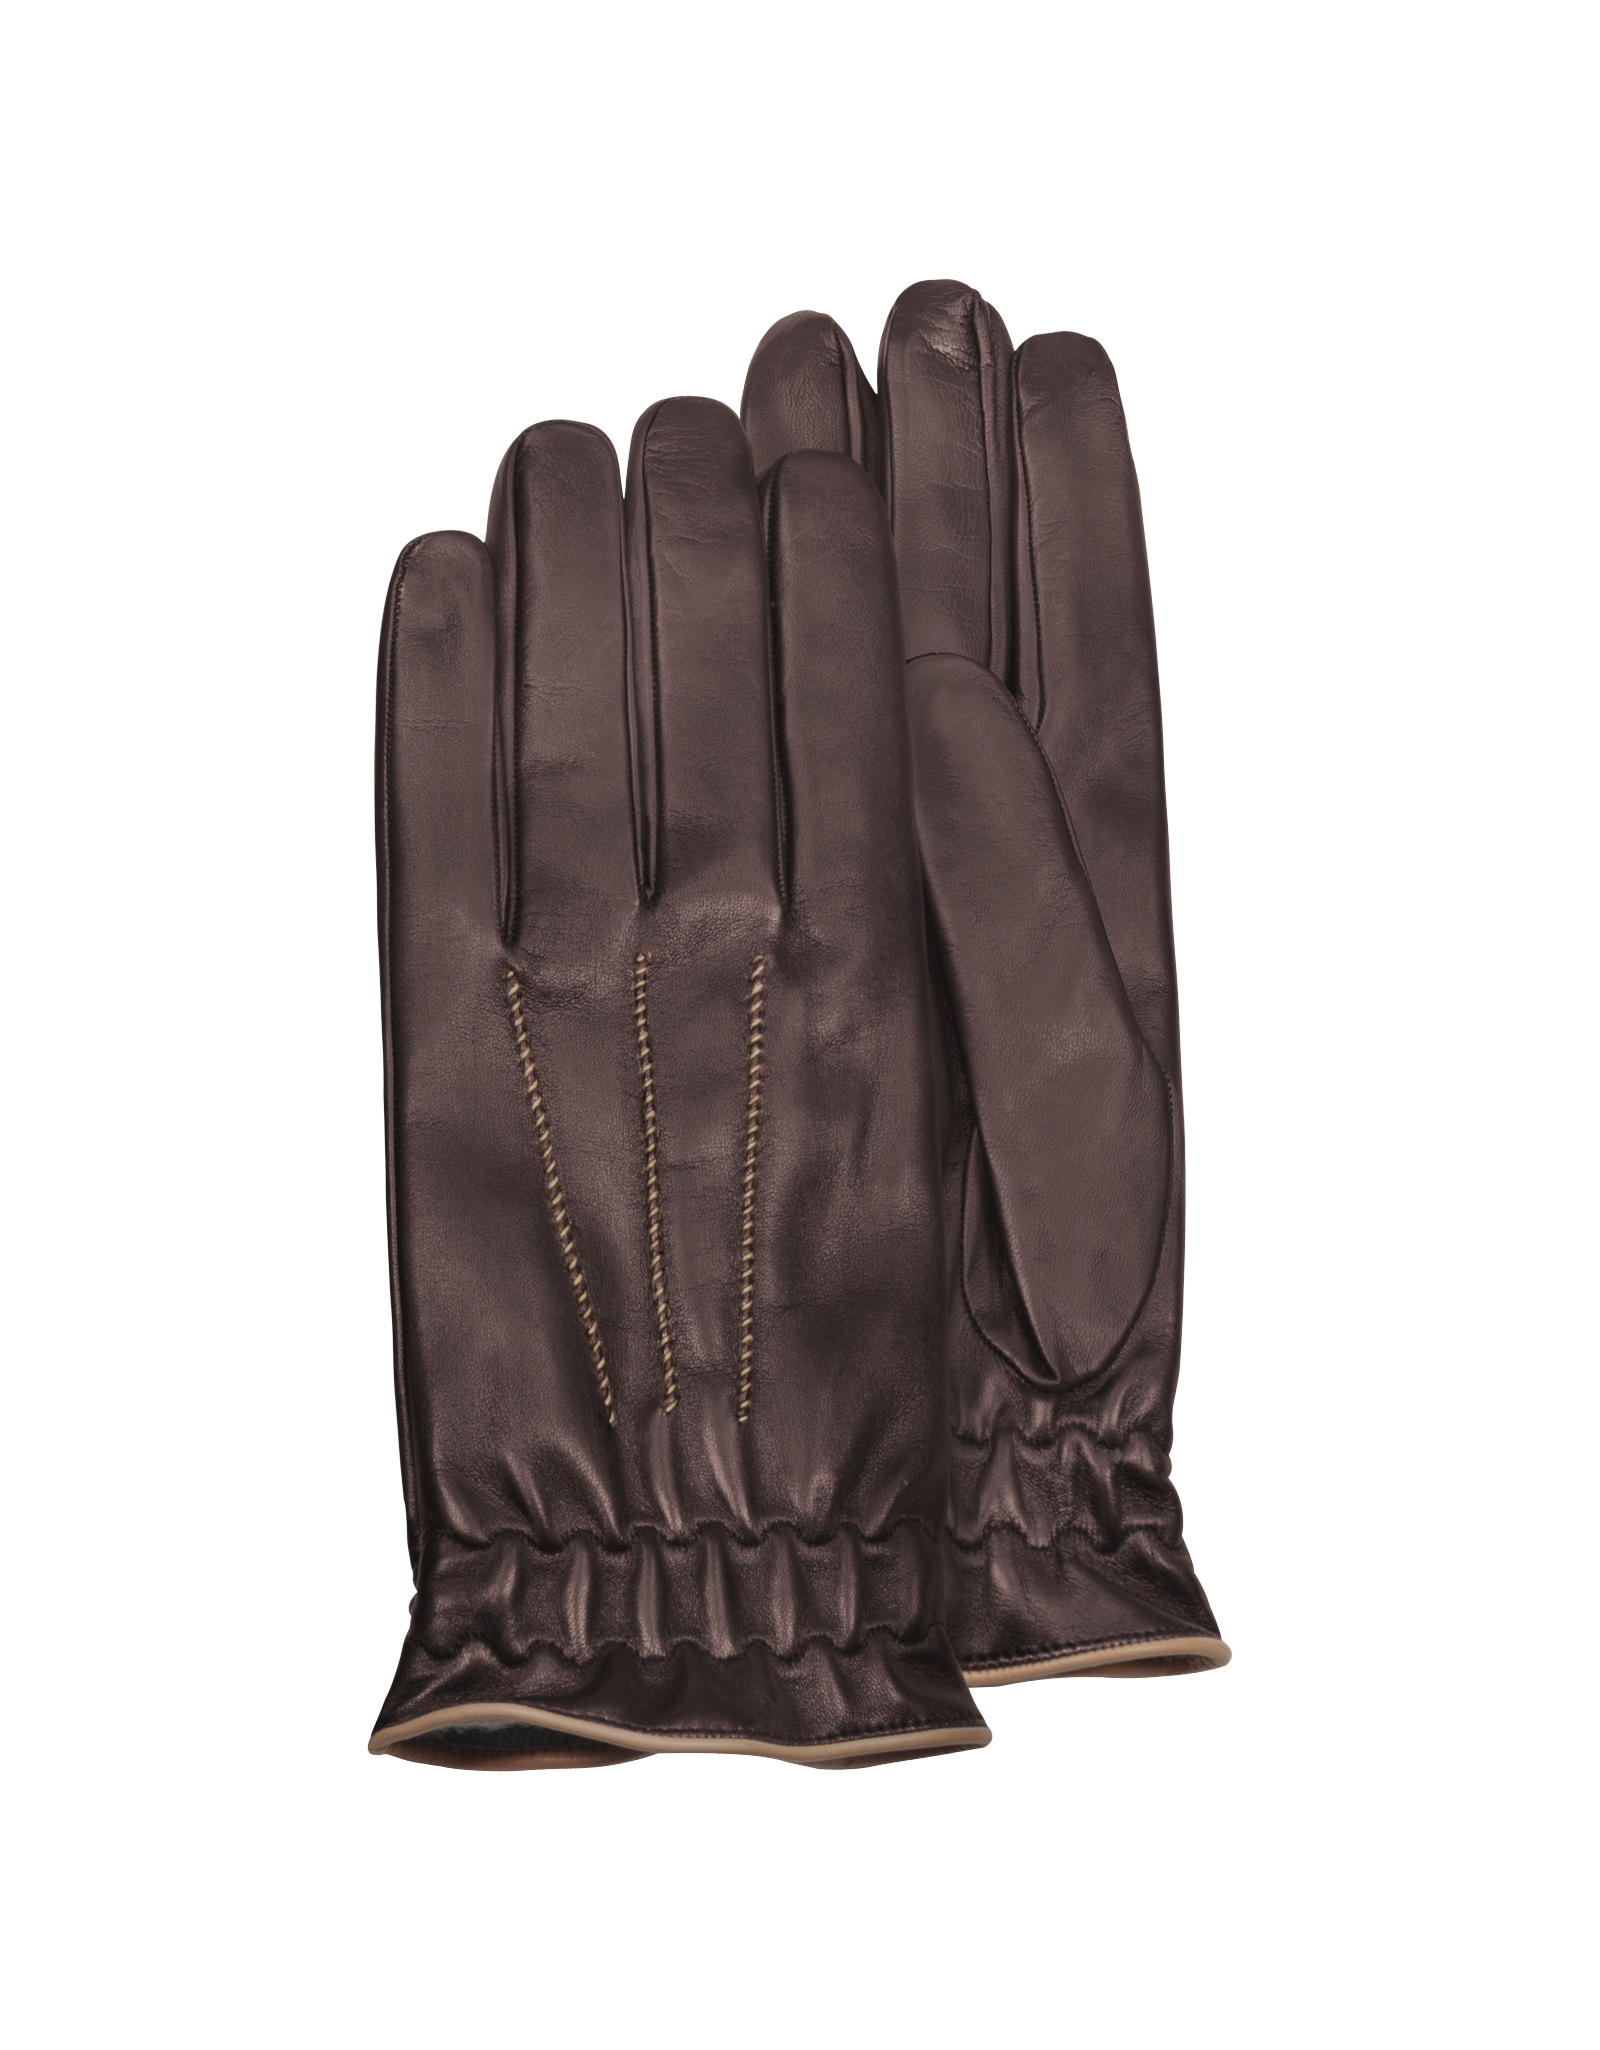 Shop brown leather gloves at Neiman Marcus, where you will find free shipping on the latest in fashion from top designers. More Details Loro Piana Leather Gloves with Cashmere Lining Details Loro Piana leather gloves with dark-brown trim. Cashmere lining. Elasticized vented wrist. Made in Italy. UGG Men's Suede & Leather Smart Gloves.